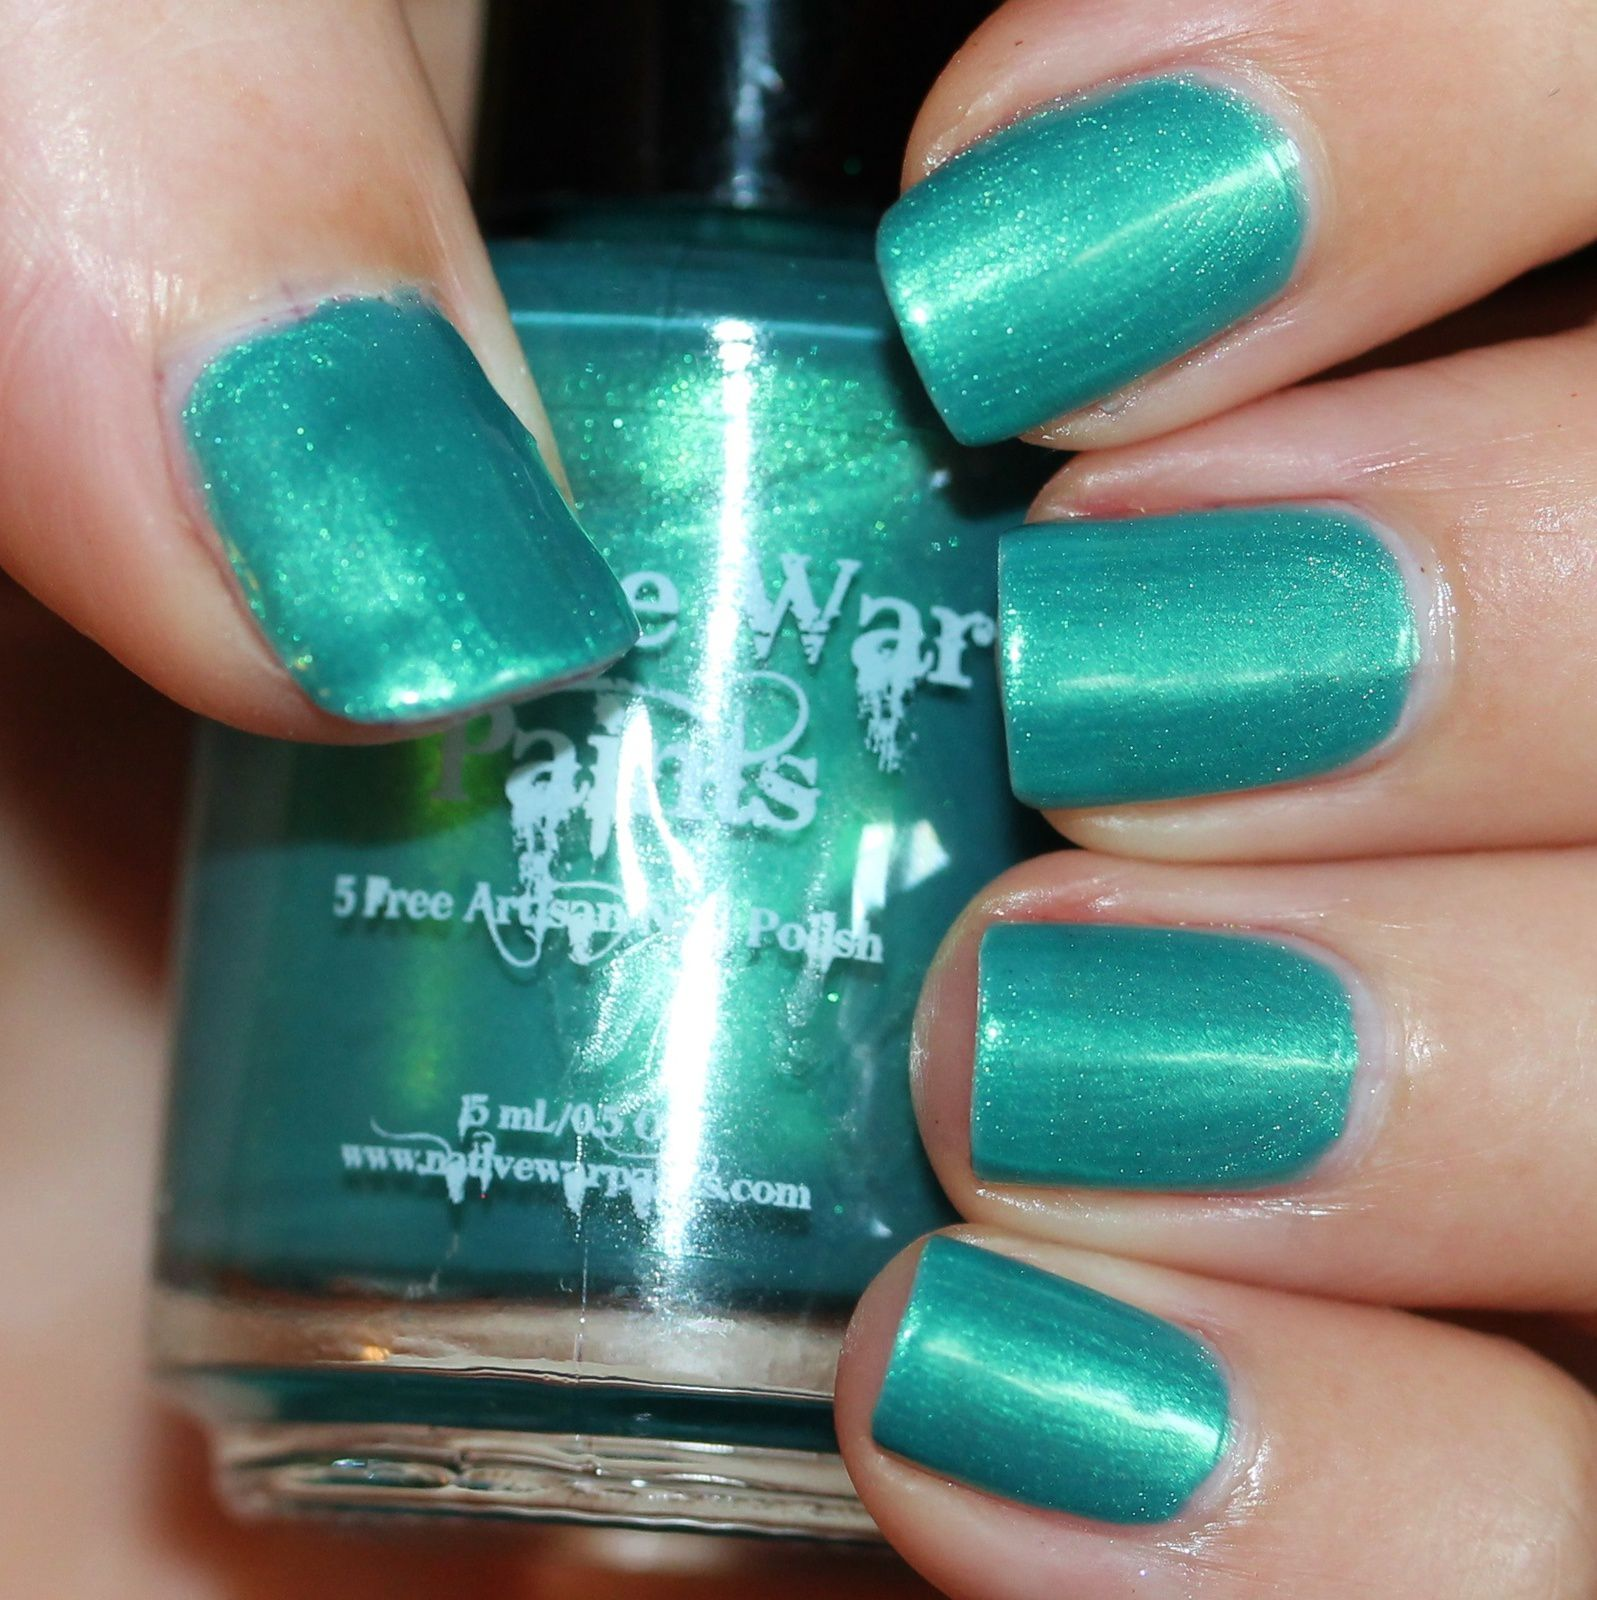 Native War Paints Teal The End (2 coats, no top coat)